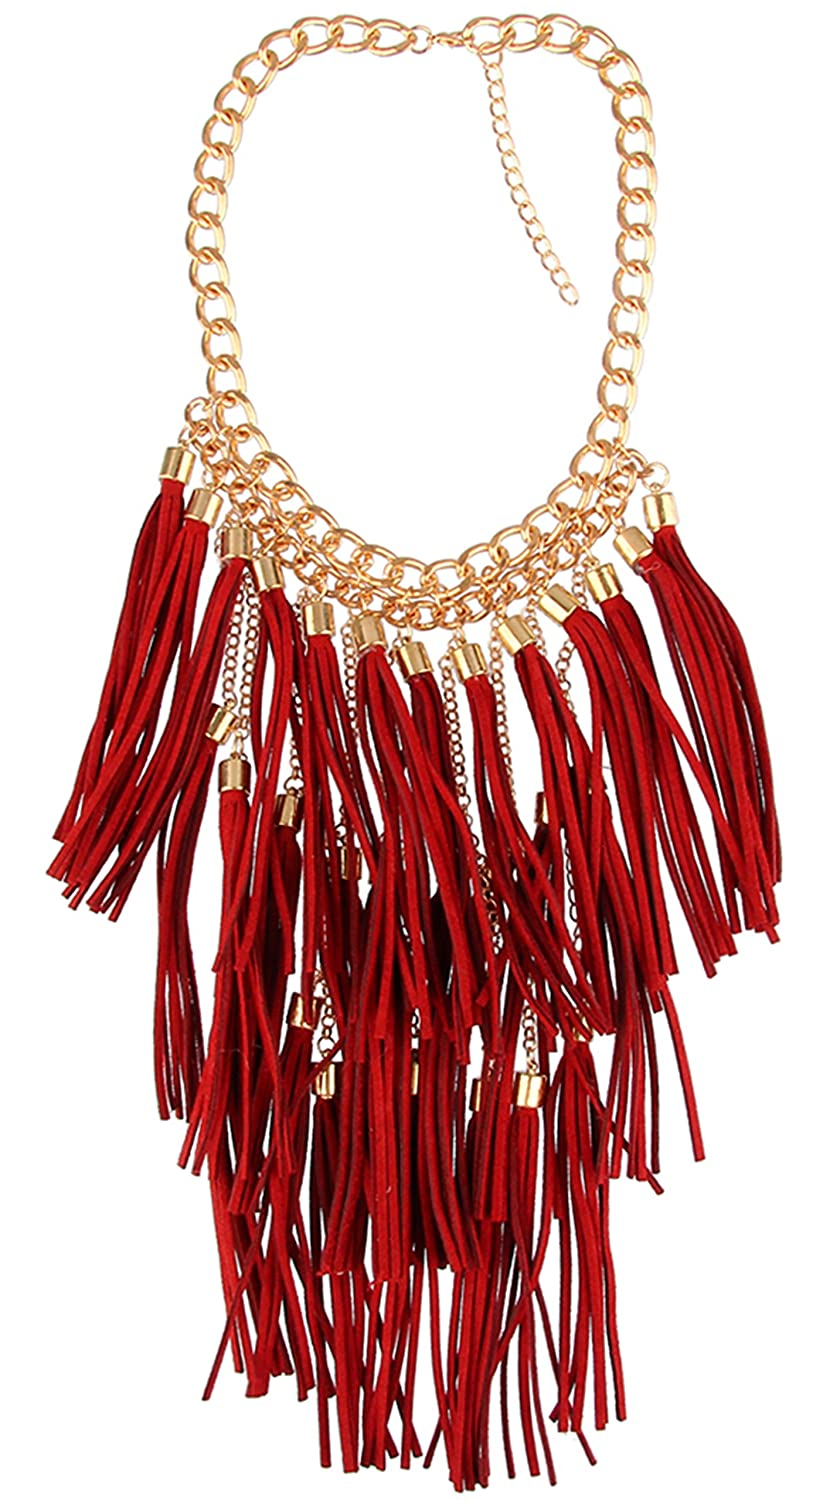 Bewish Womens Exaggerated Bohemian Boho Long Tassels Choker Fringe Statement Bib Necklace Collar Chunky (Brown/Red/Mixcolor)